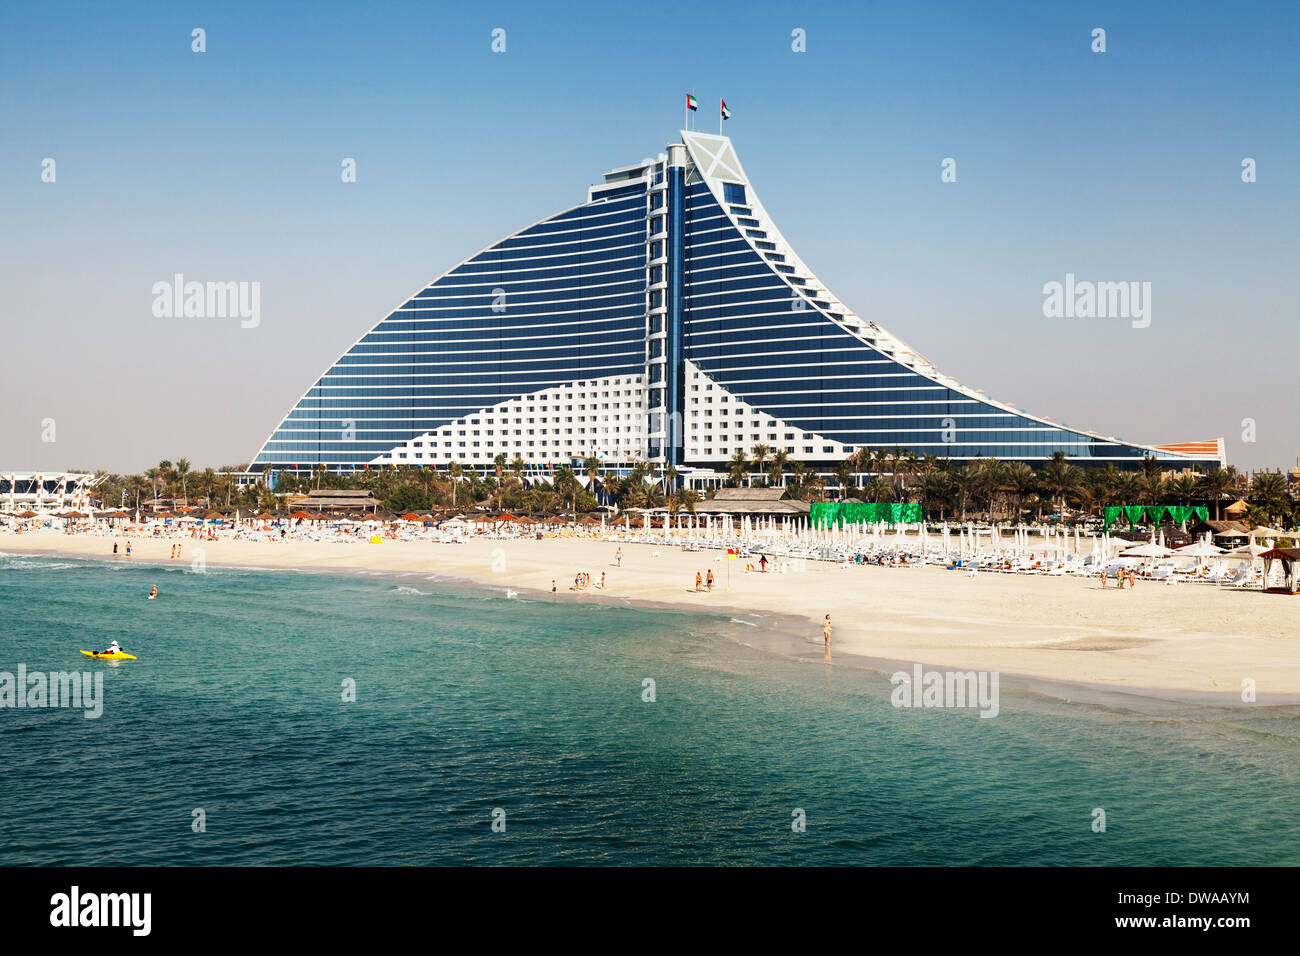 The jumeirah beach hotel dubai a luxury 5 star hotel for All hotels in dubai